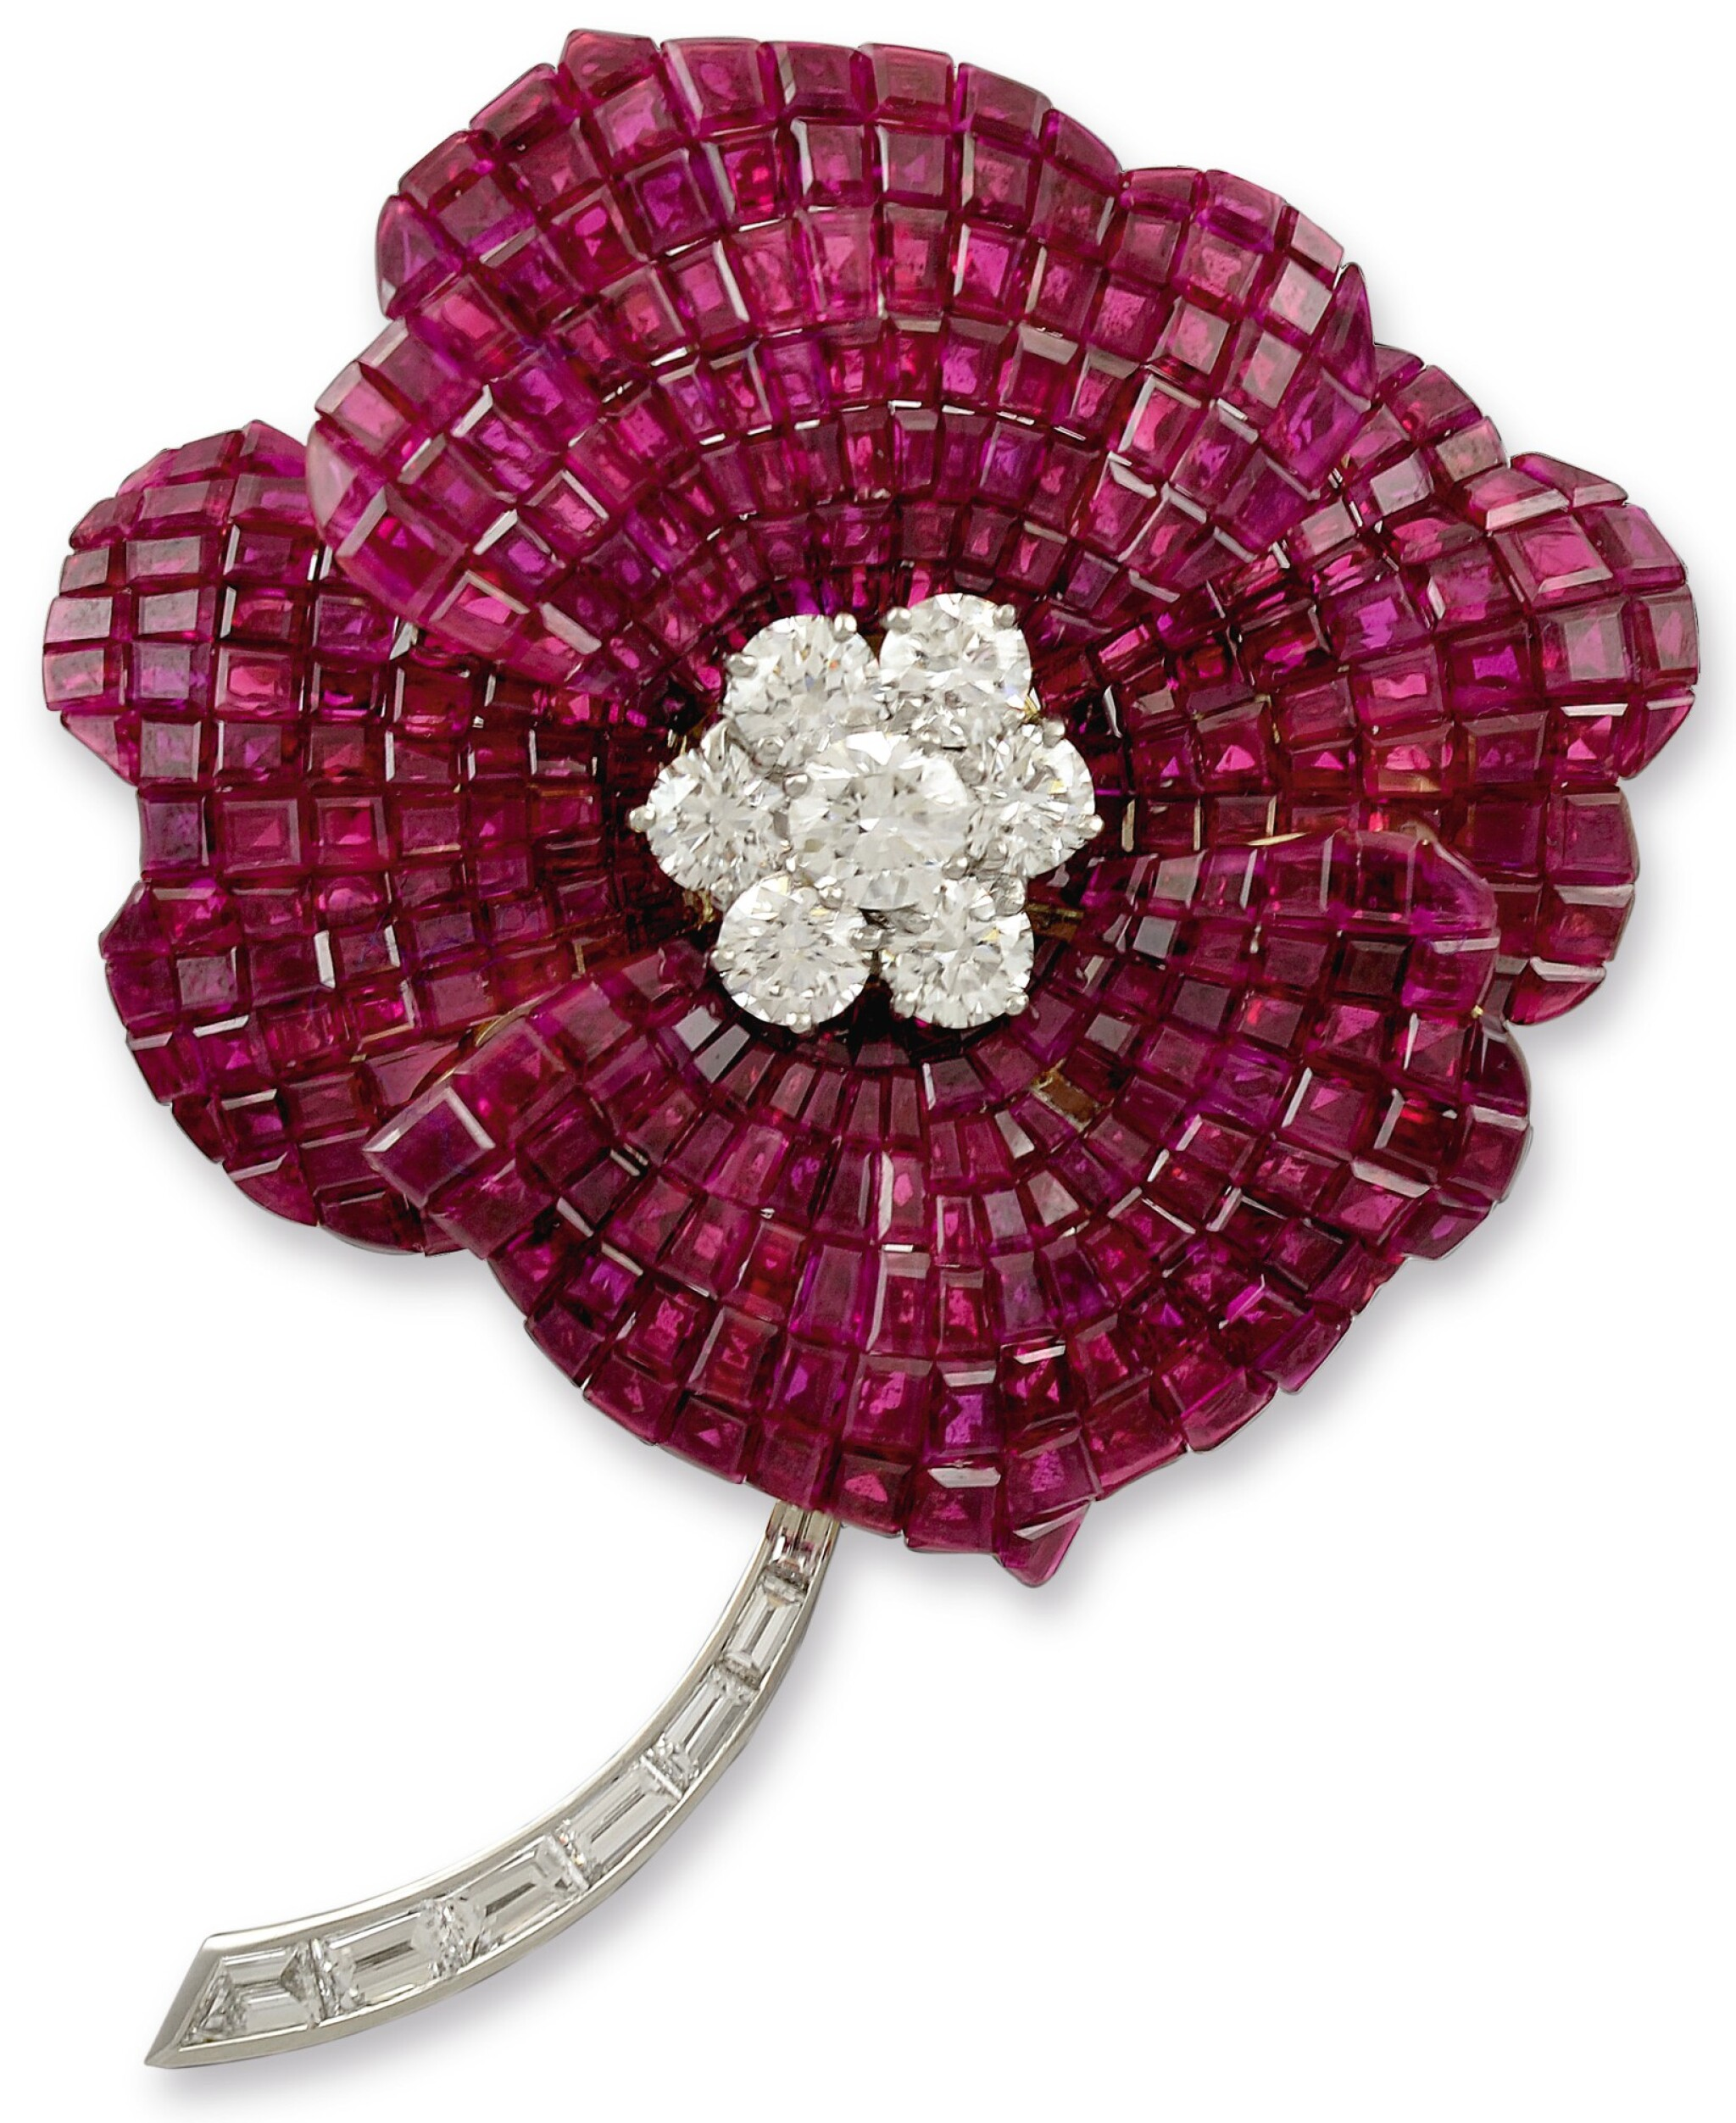 View full screen - View 1 of Lot 49. OSCAR HEYMAN & BROTHERS | RUBY AND DIAMOND BROOCH.